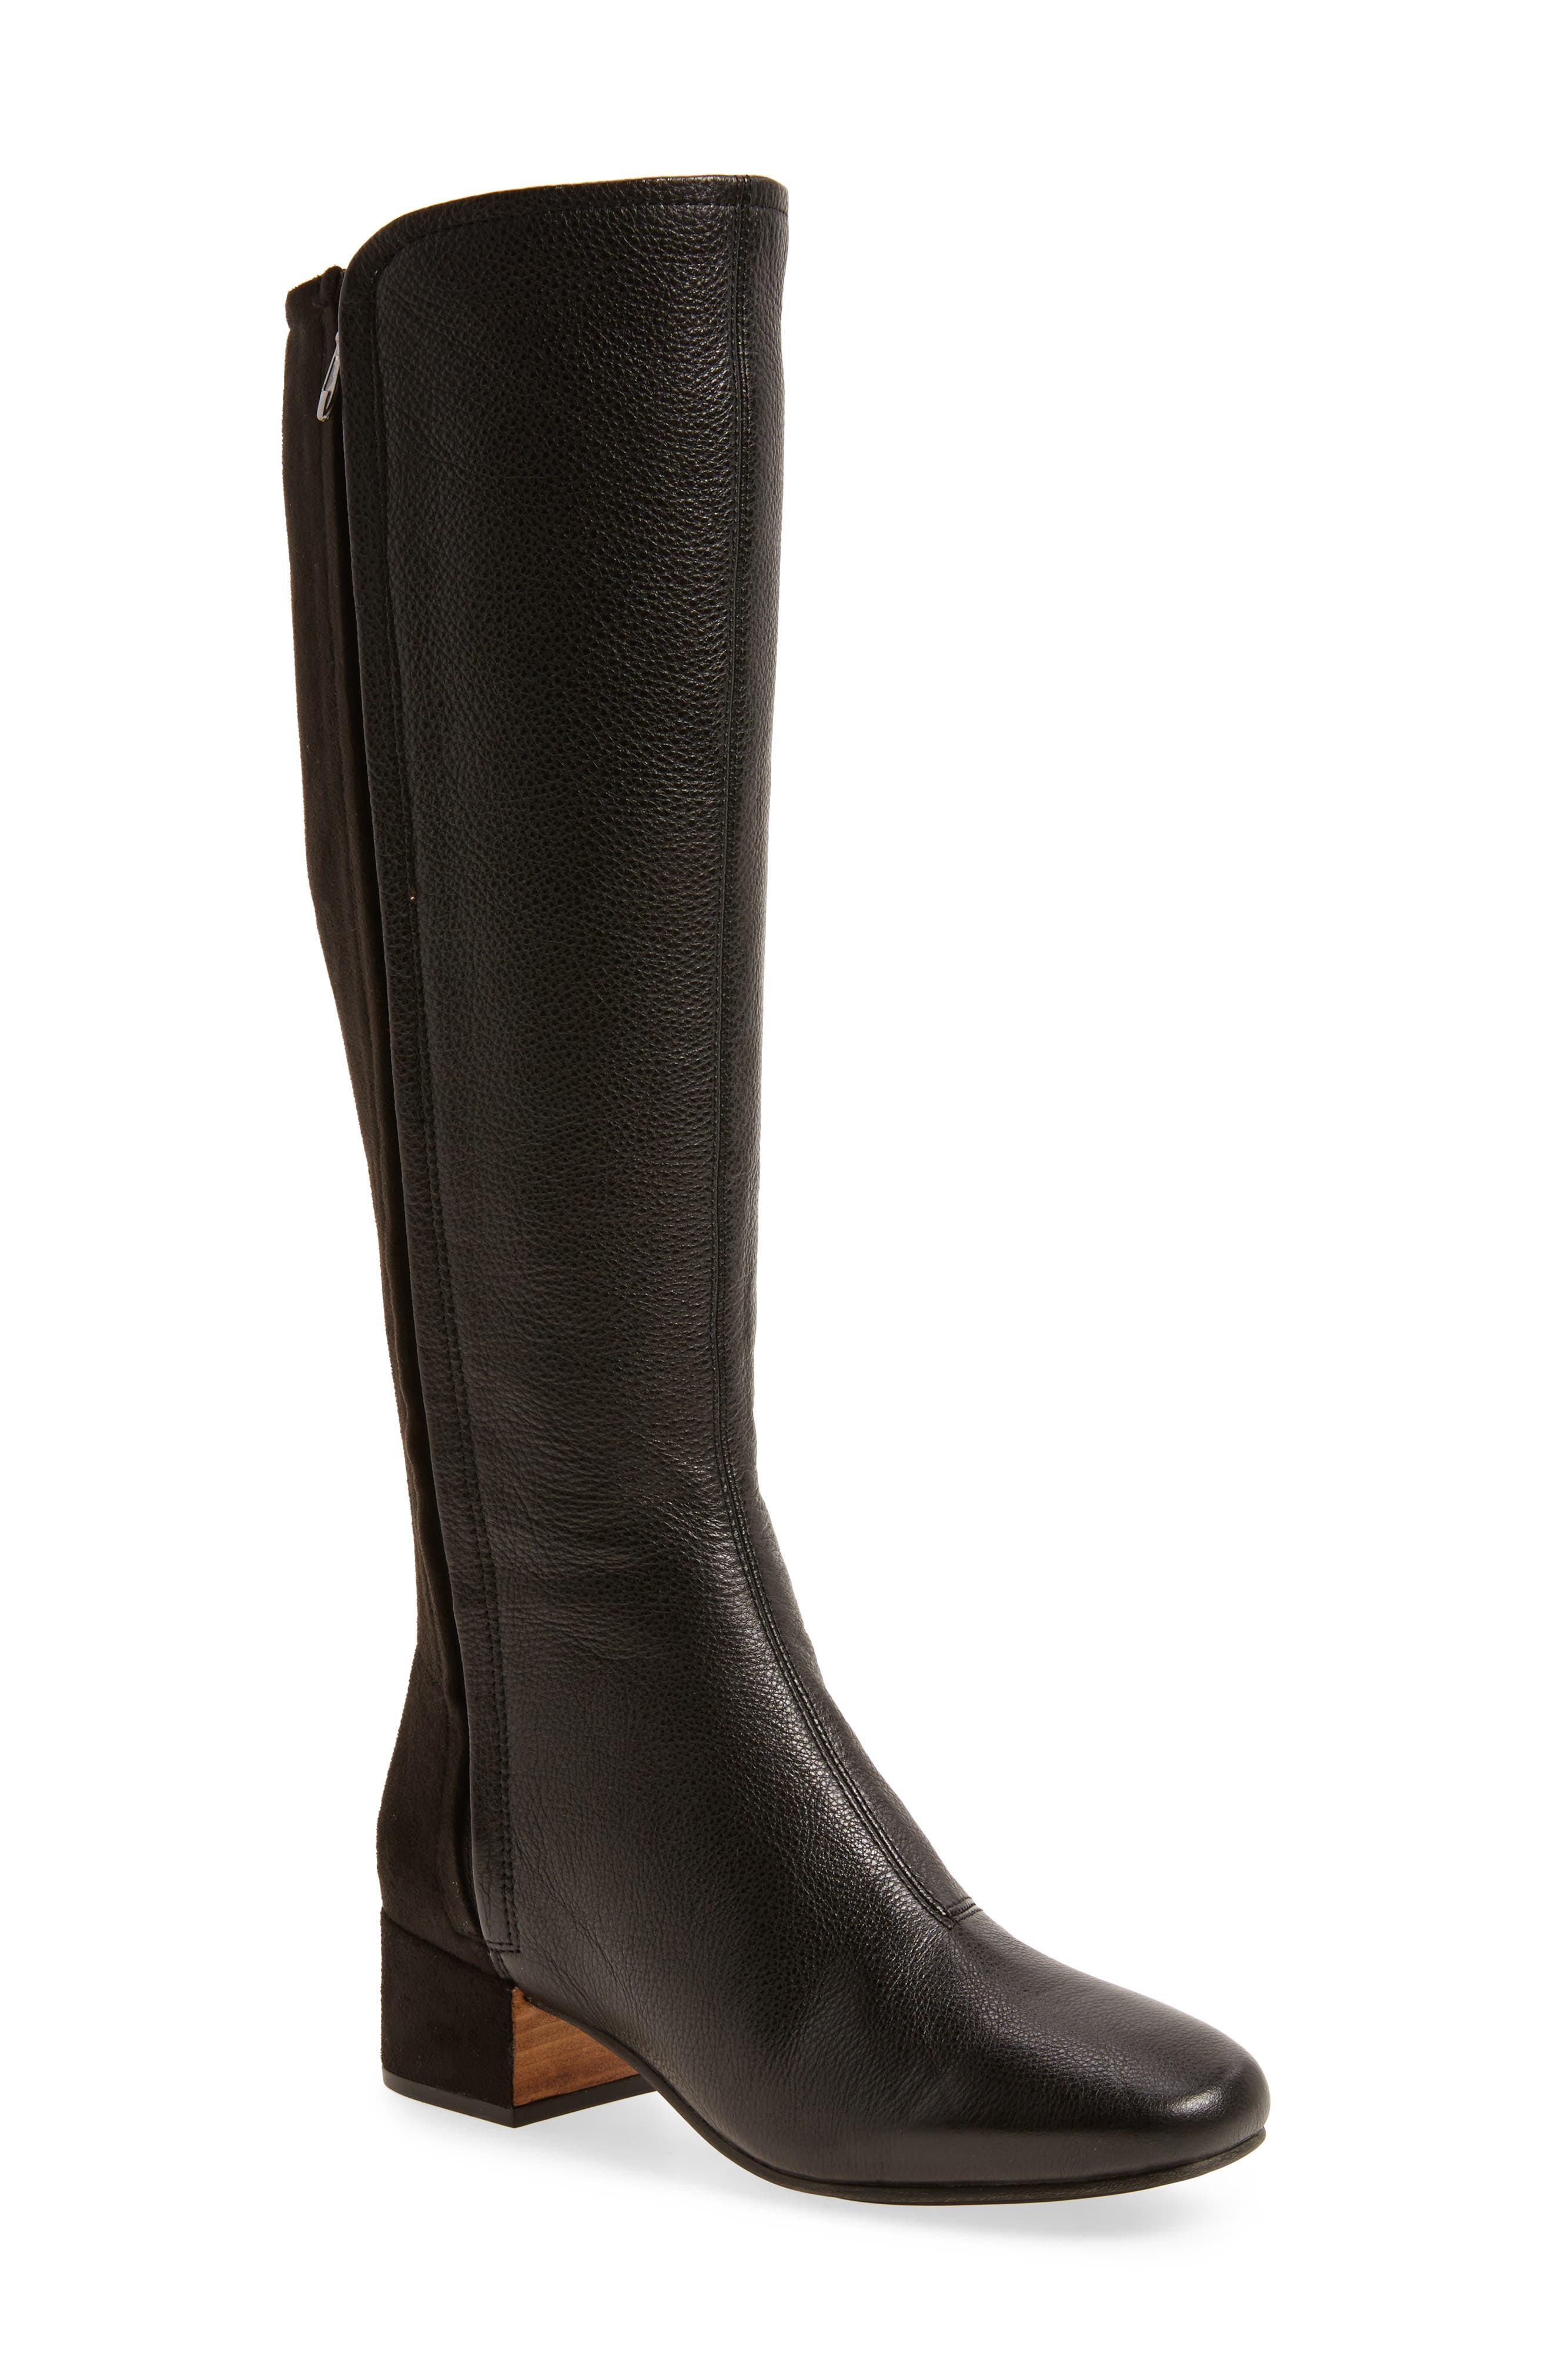 GENTLE SOULS BY KENNETH COLE,                             Ella-Seti Knee High Boot,                             Main thumbnail 1, color,                             001